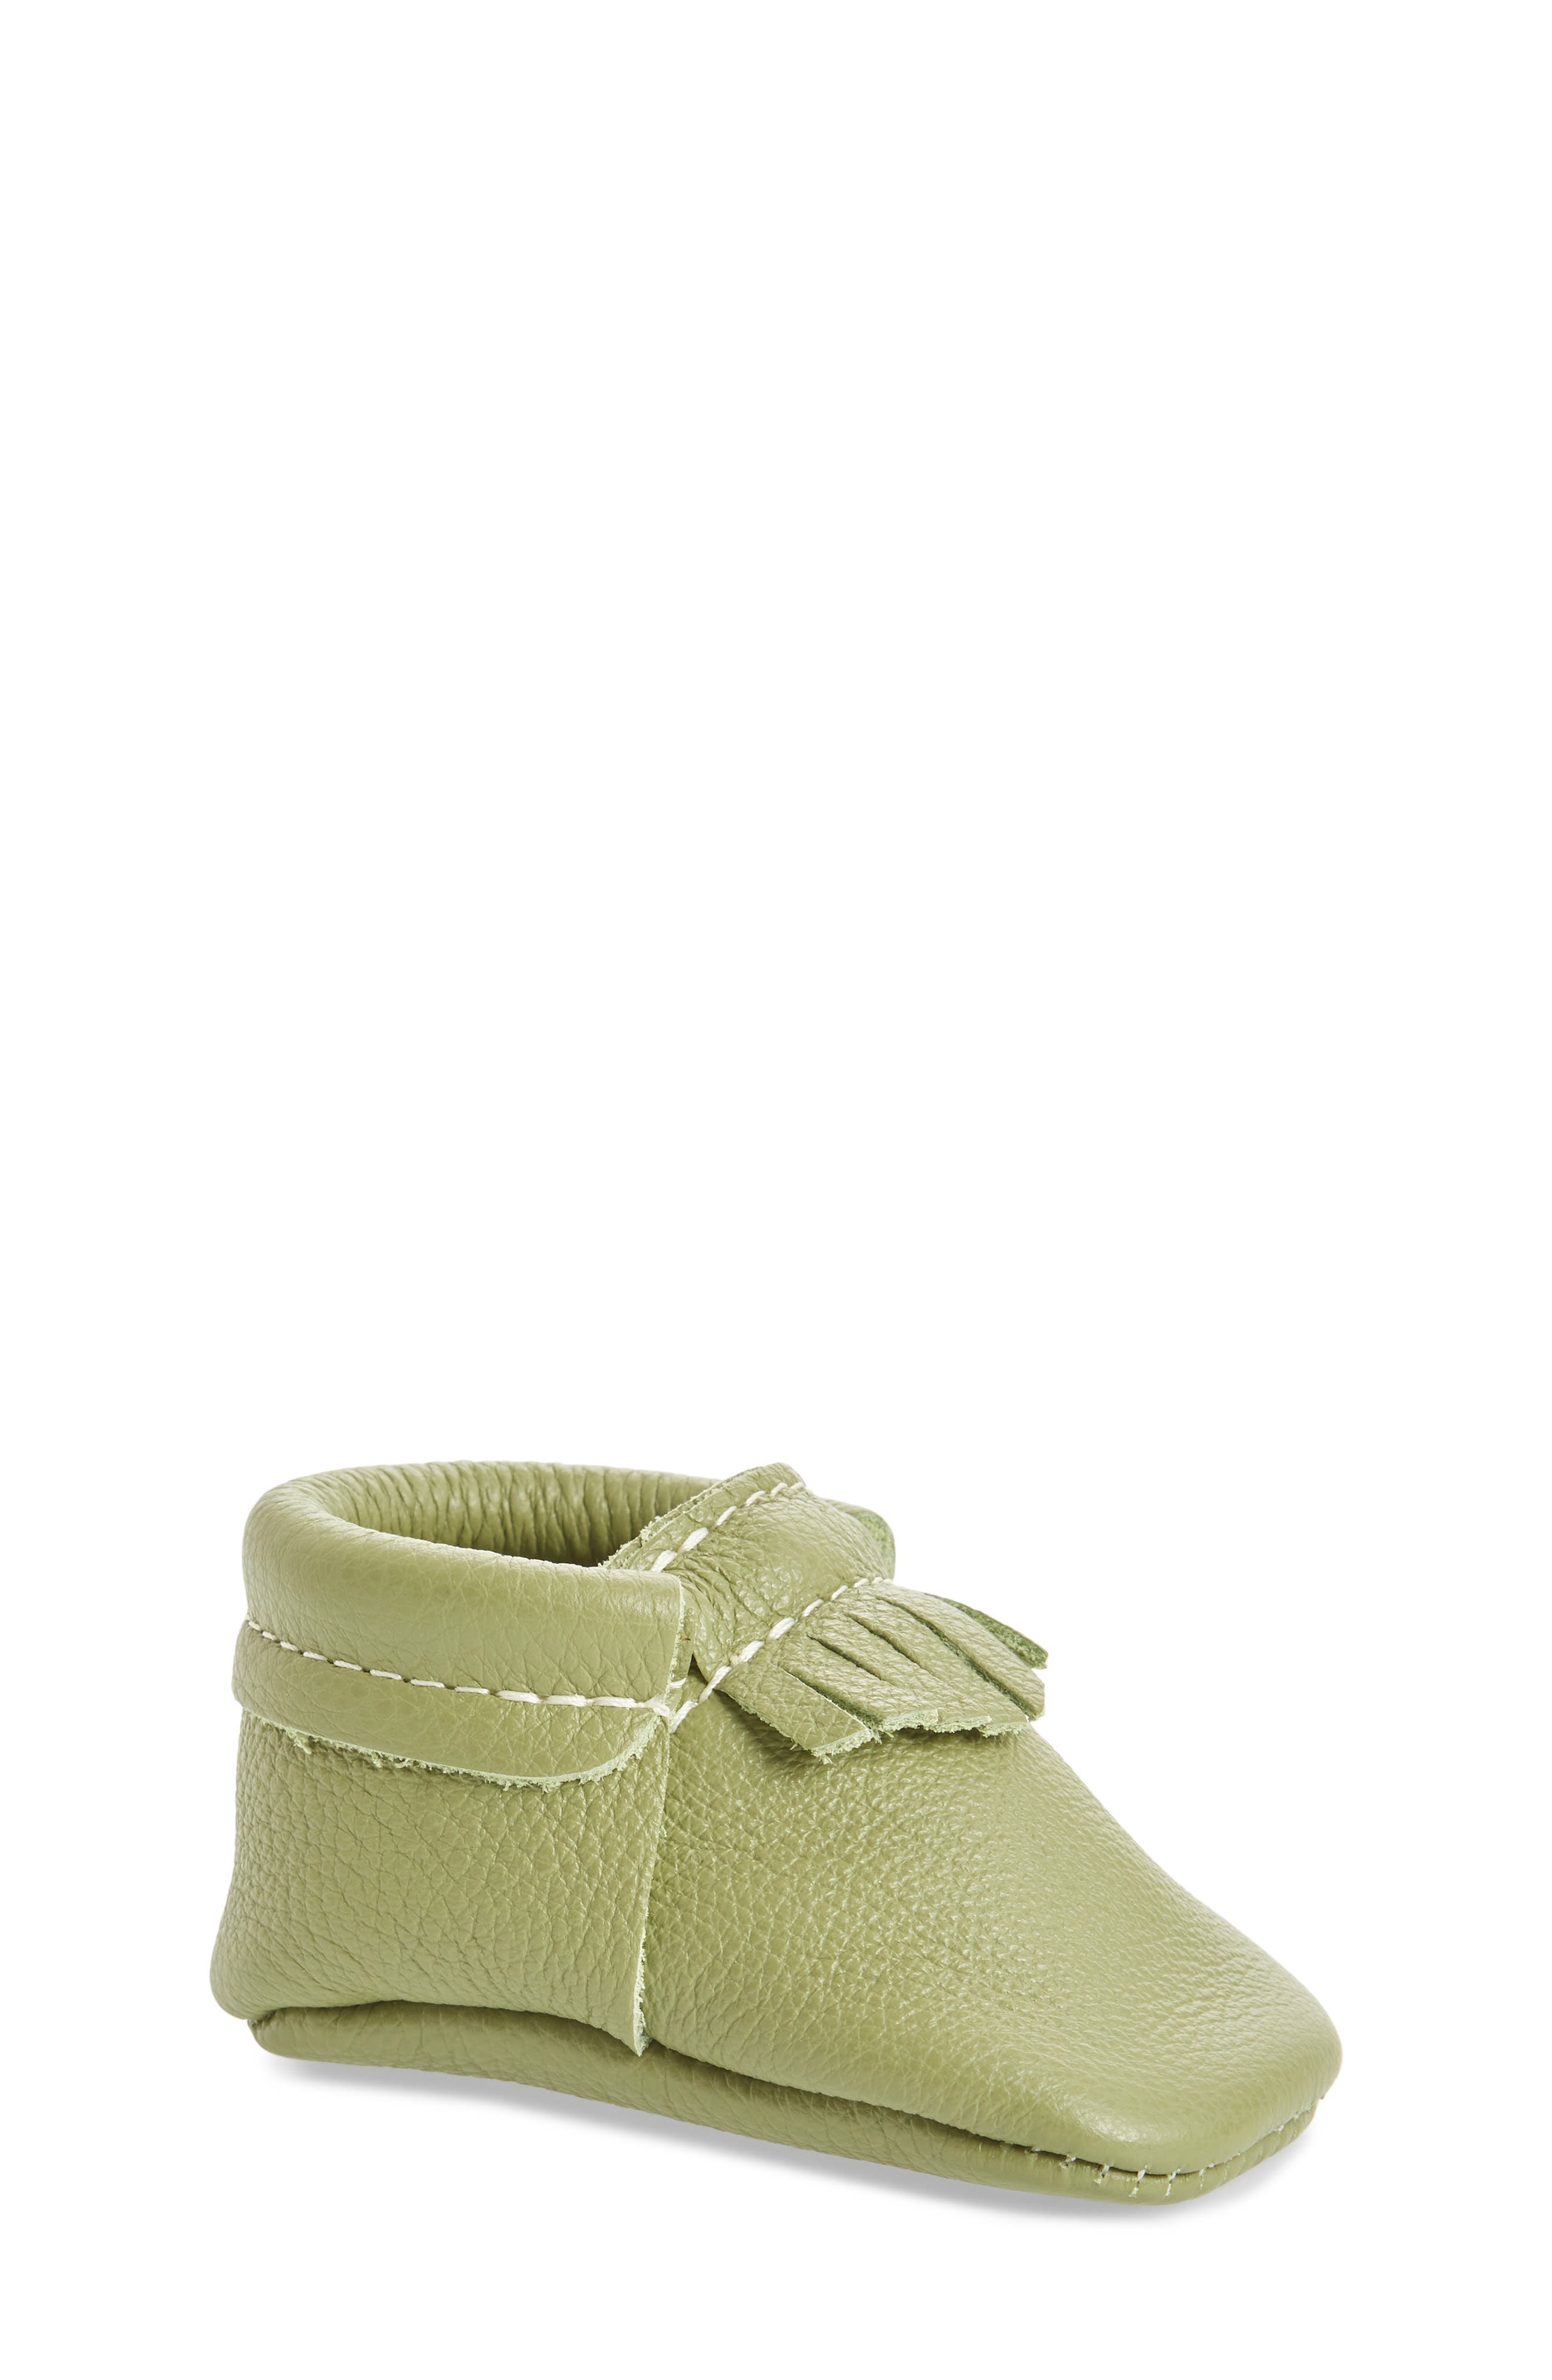 Leather Moccasin,                         Main,                         color, Green Leather